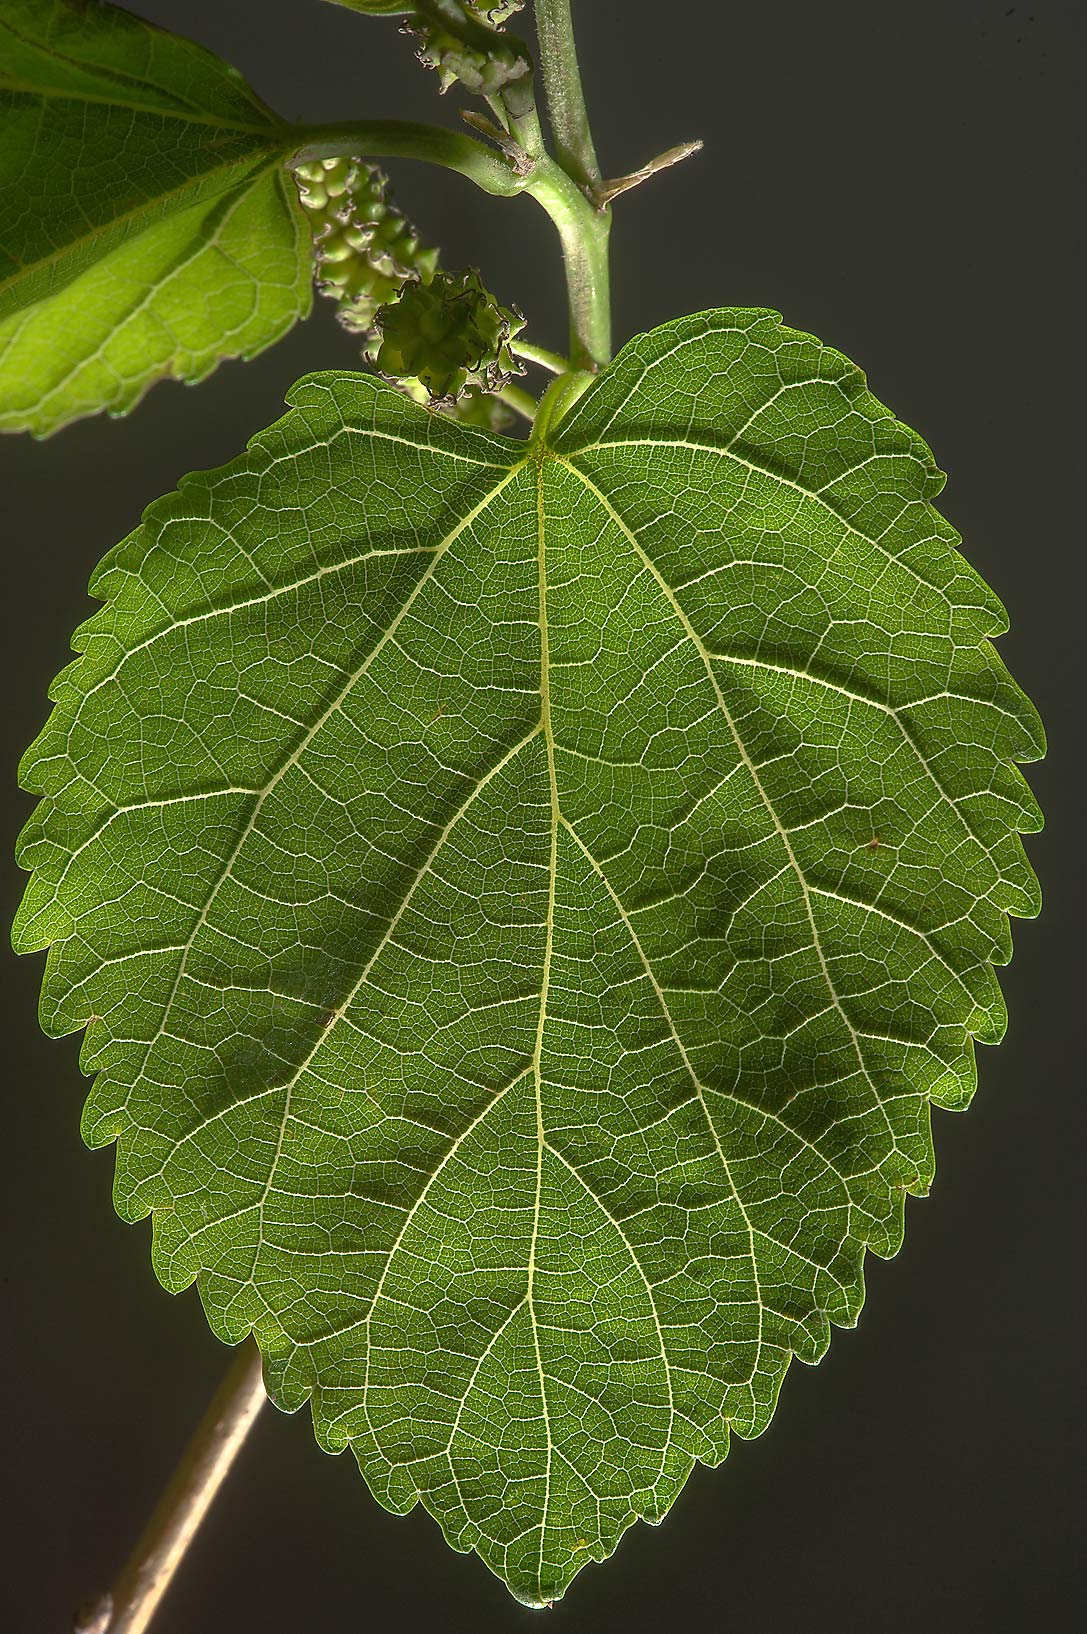 Leaf of white mulberry (Morus alba) taken from Al Sham St. in West Bay. Doha, Qatar